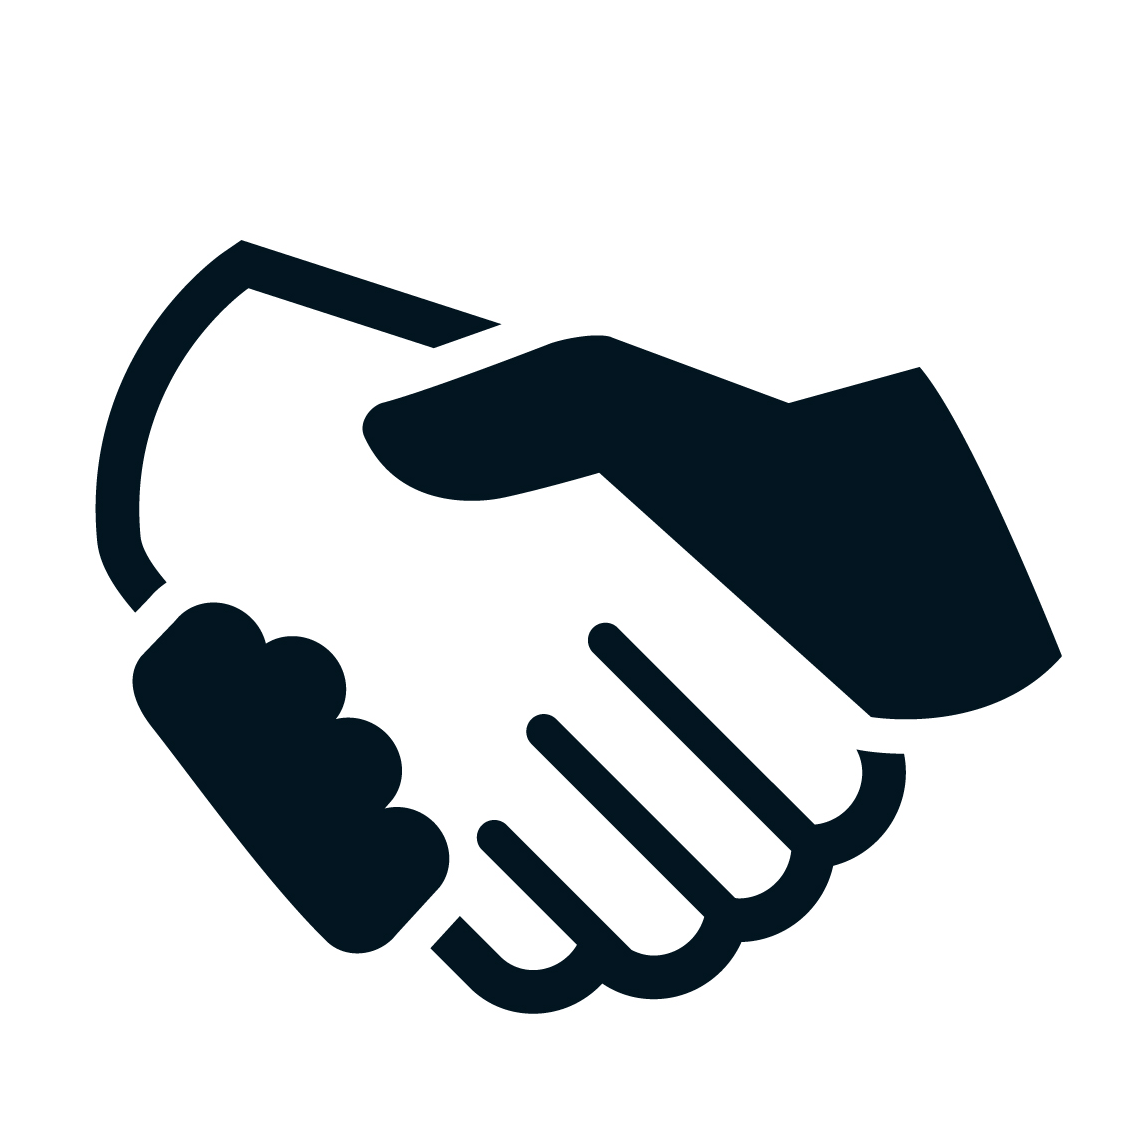 Example for the handshake icon element of the logo ...